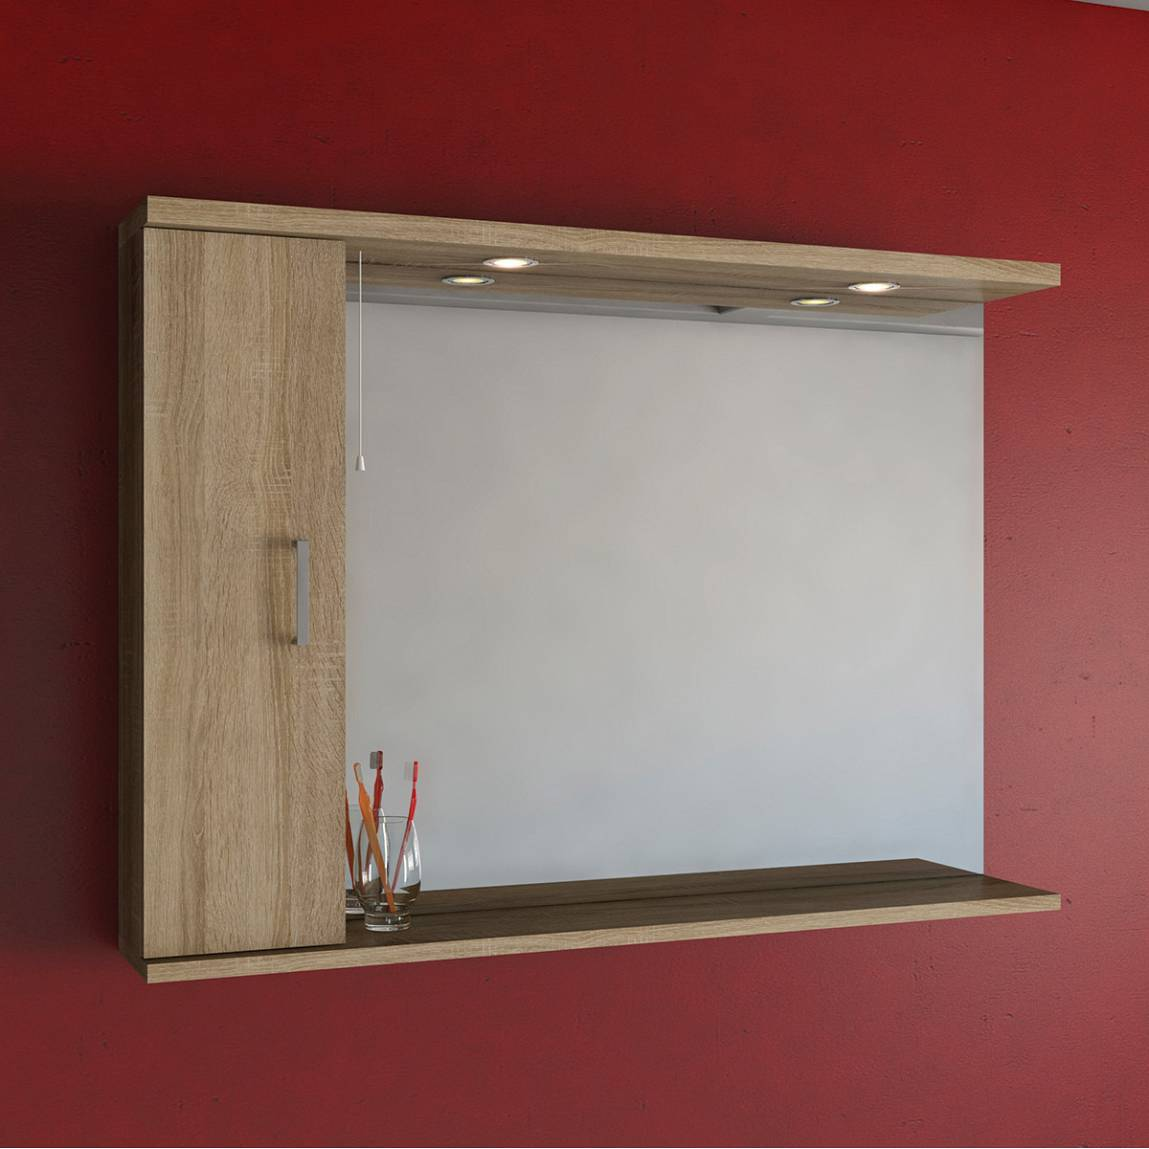 Sienna Oak 120 Mirror with Lights